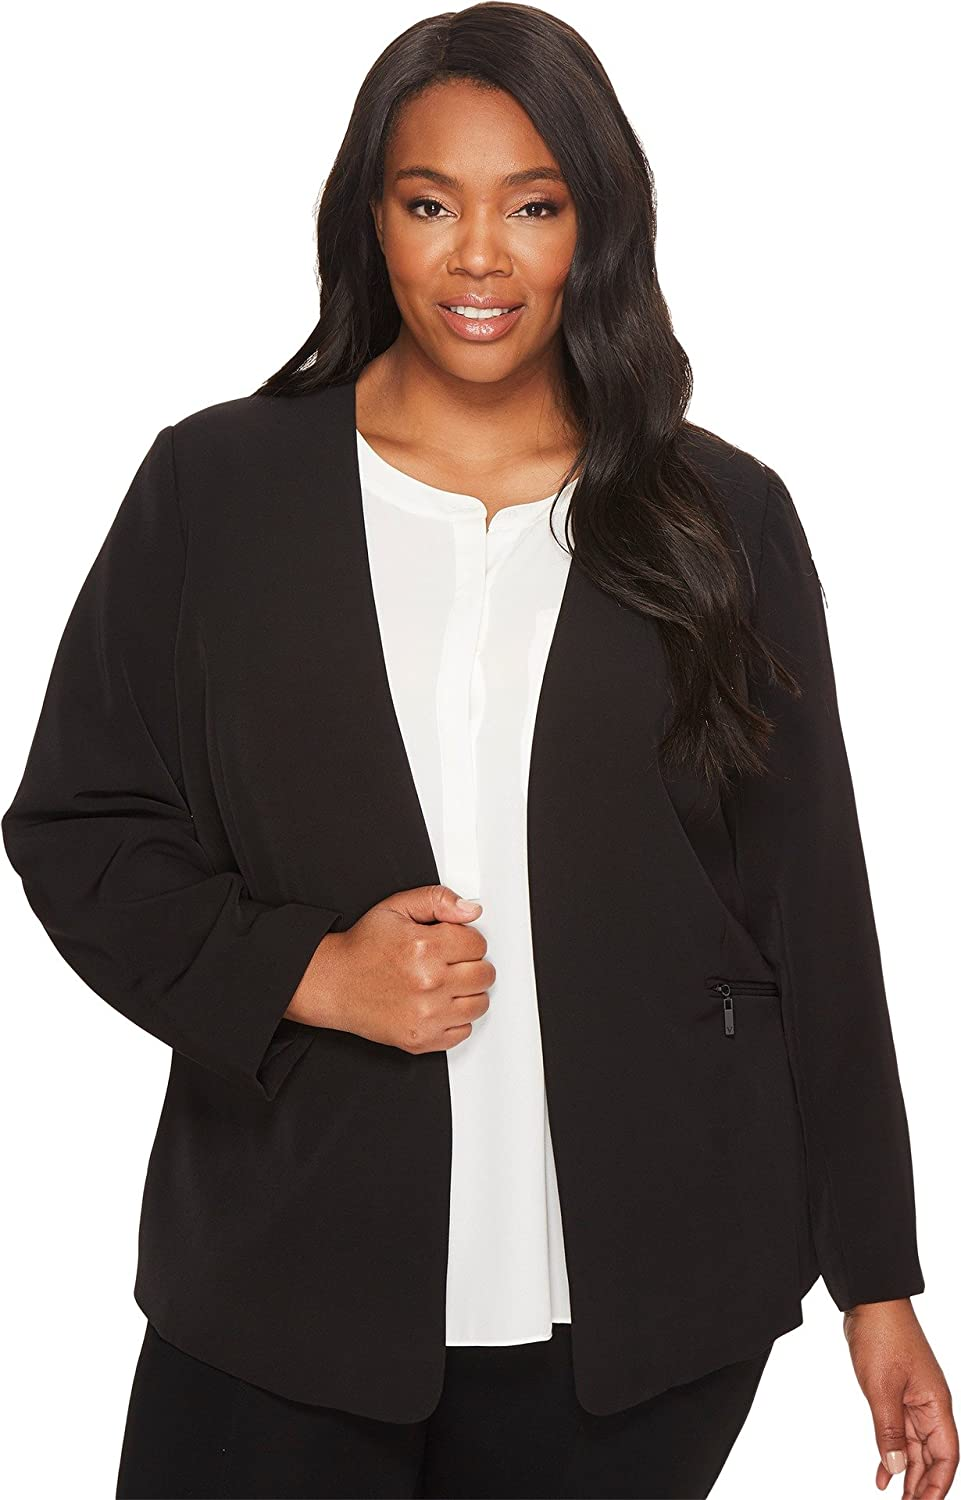 65812c04420 Vince Camuto Specialty Size Women s Plus Size Milano Twill Open Front Blazer  Rich Black 24W  Amazon.co.uk  Clothing